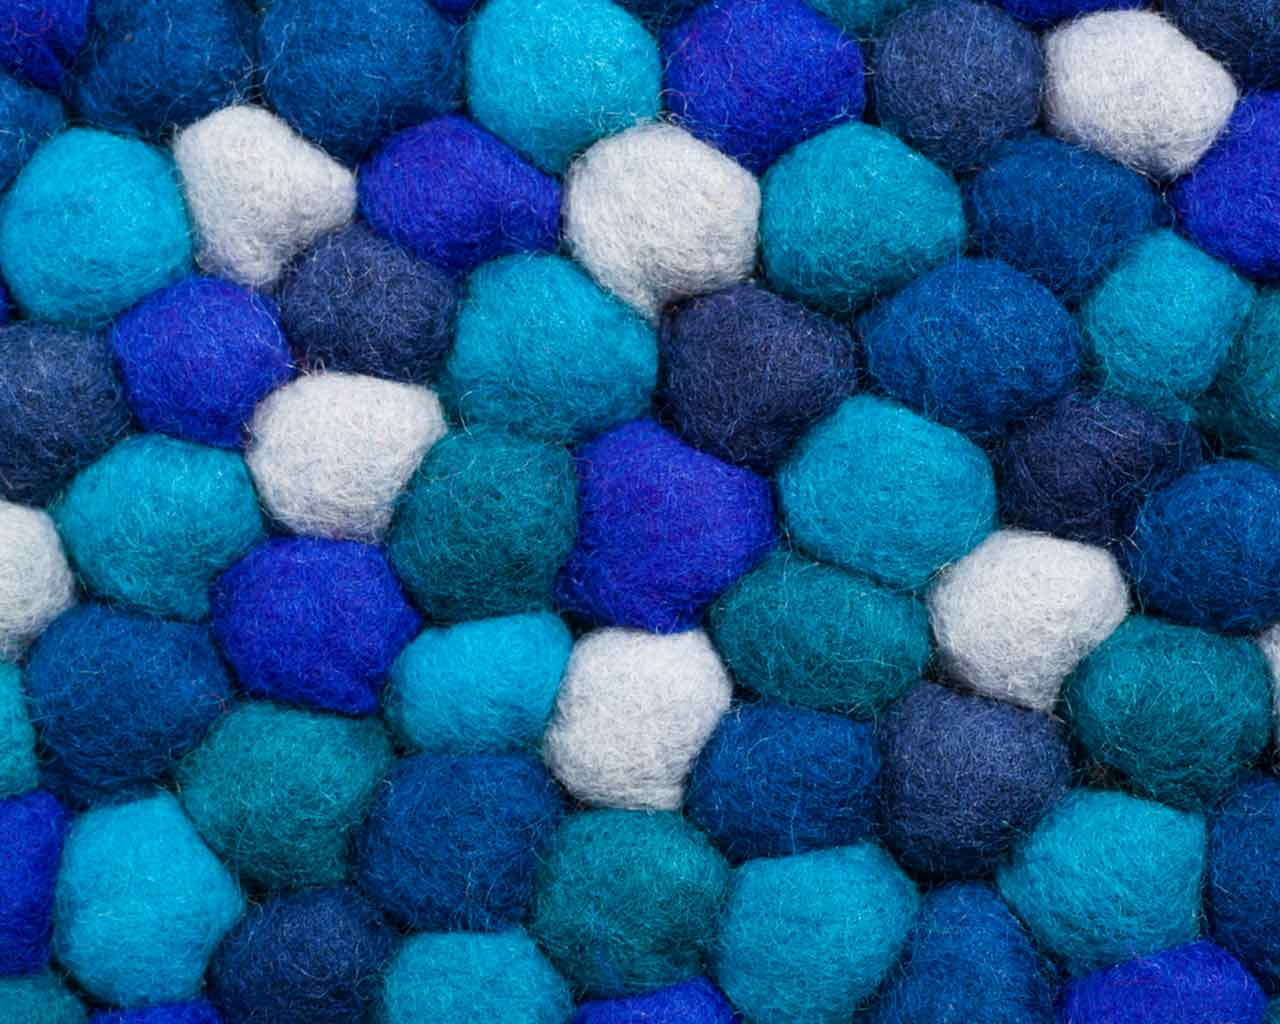 felt ball rug scandinavian design blue